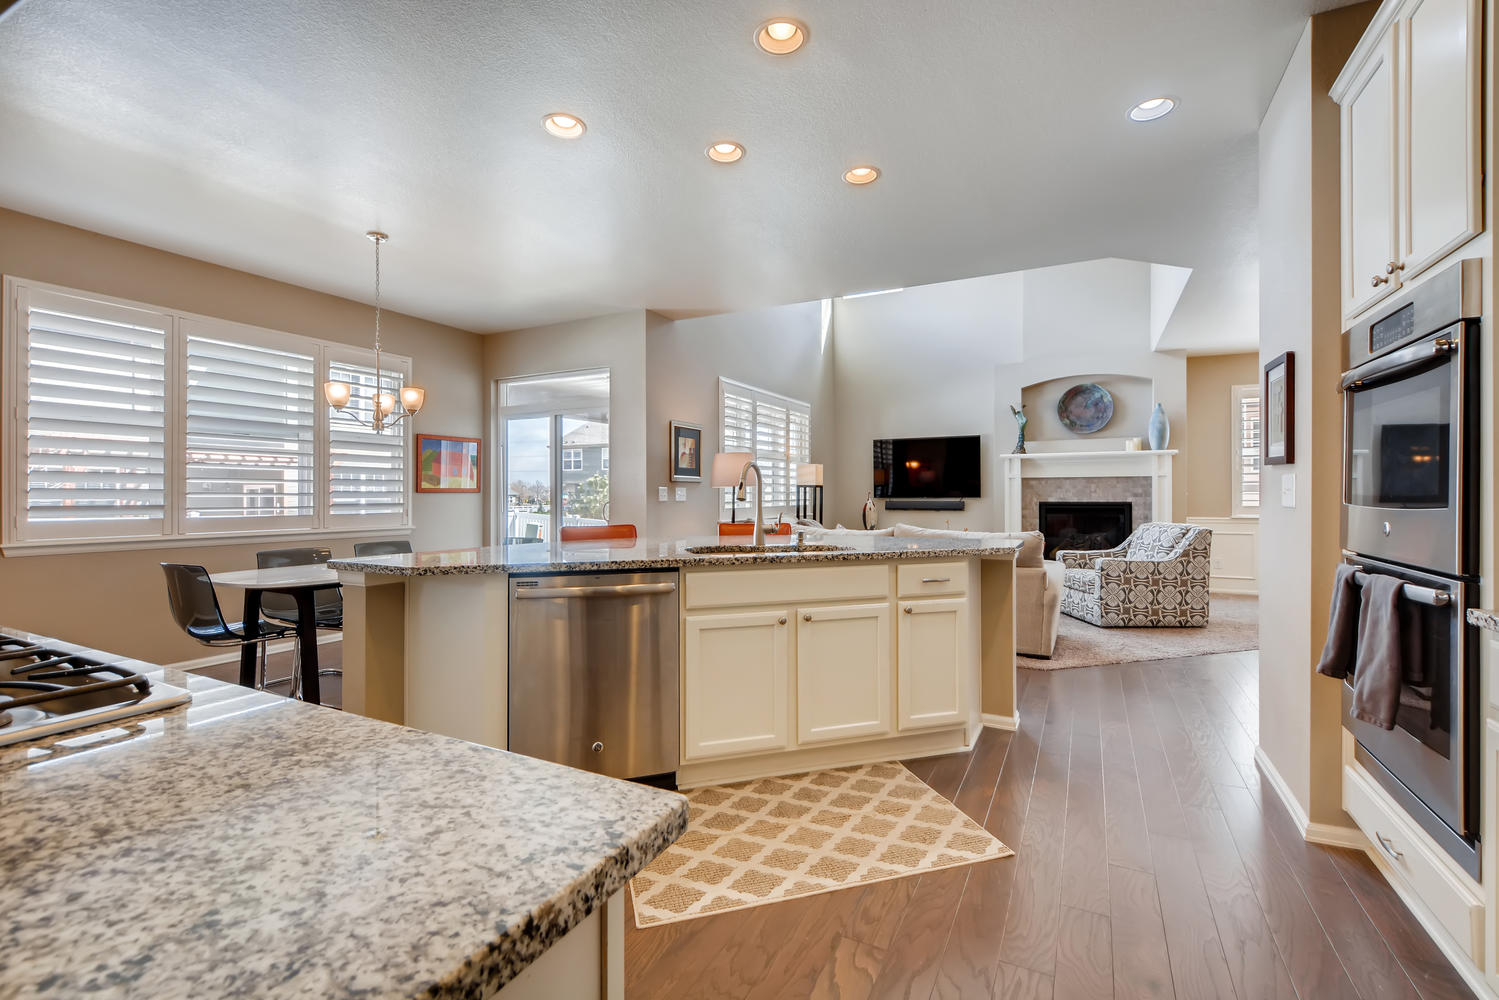 REAL ESTATE LISTING: 2182 Steppe Dr Longmont Gourmet Kitchen